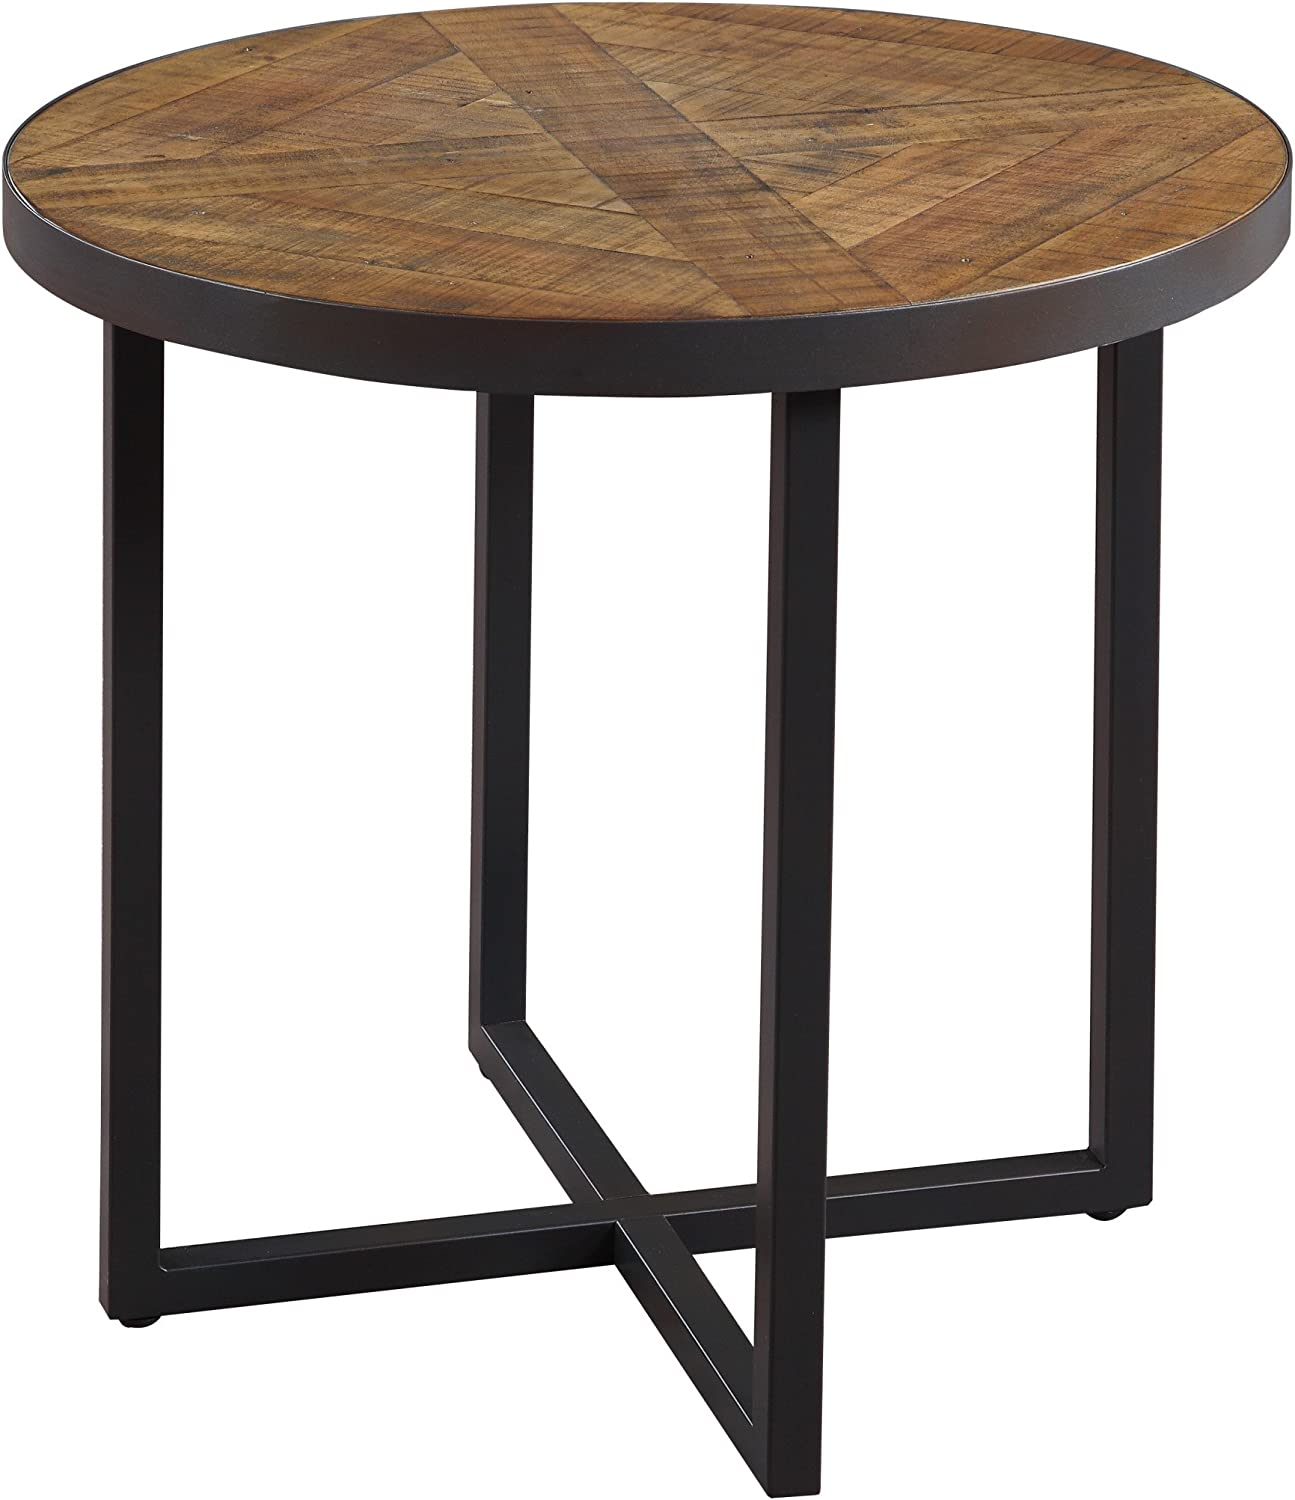 Emerald Home Denton Antique Pine End Table with Round, Pieced Top And Metal Base